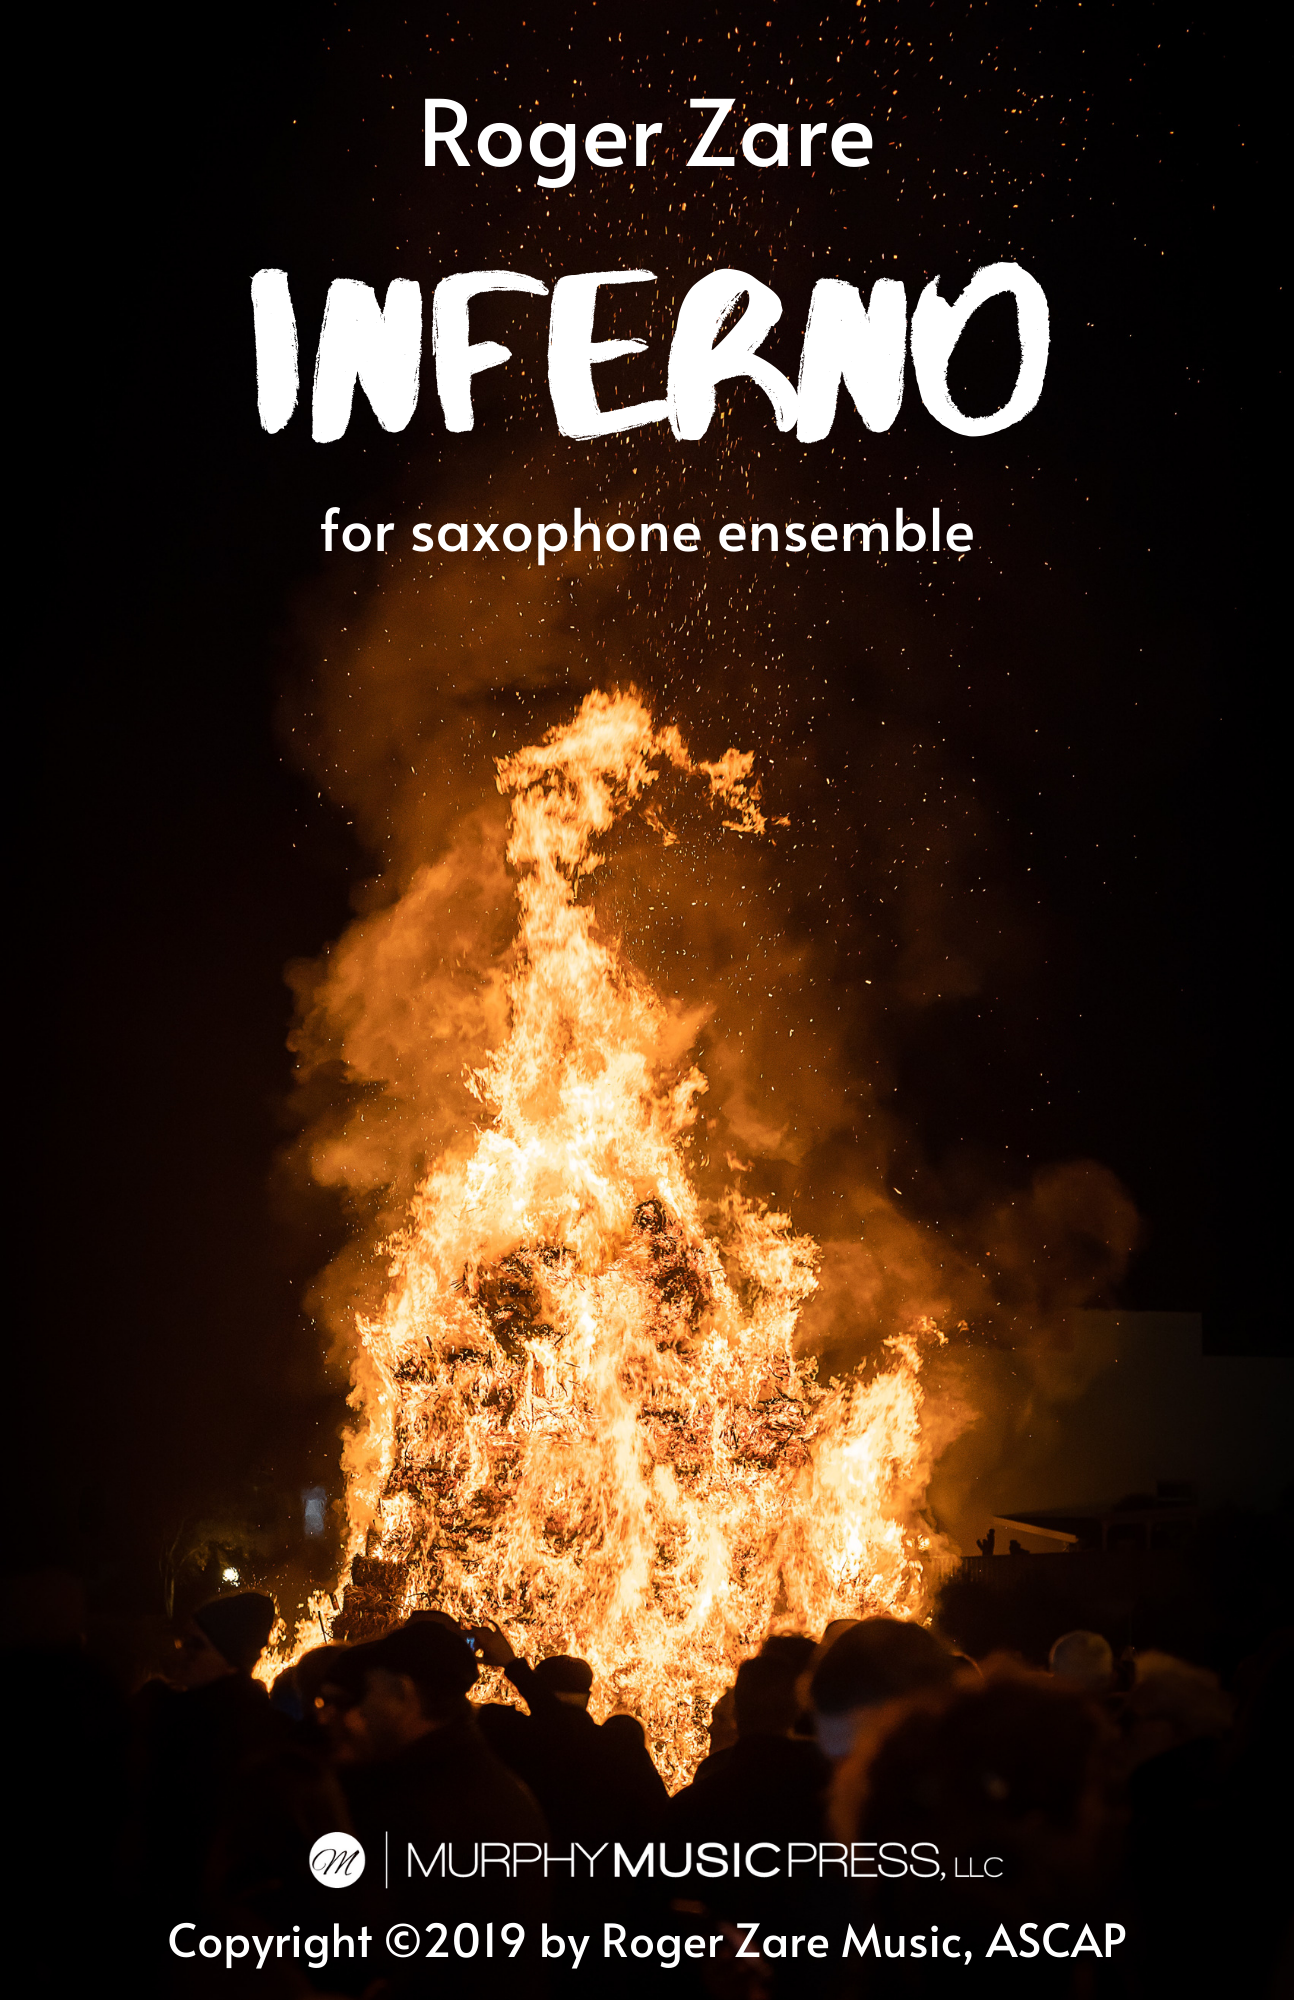 Inferno by Roger Zare